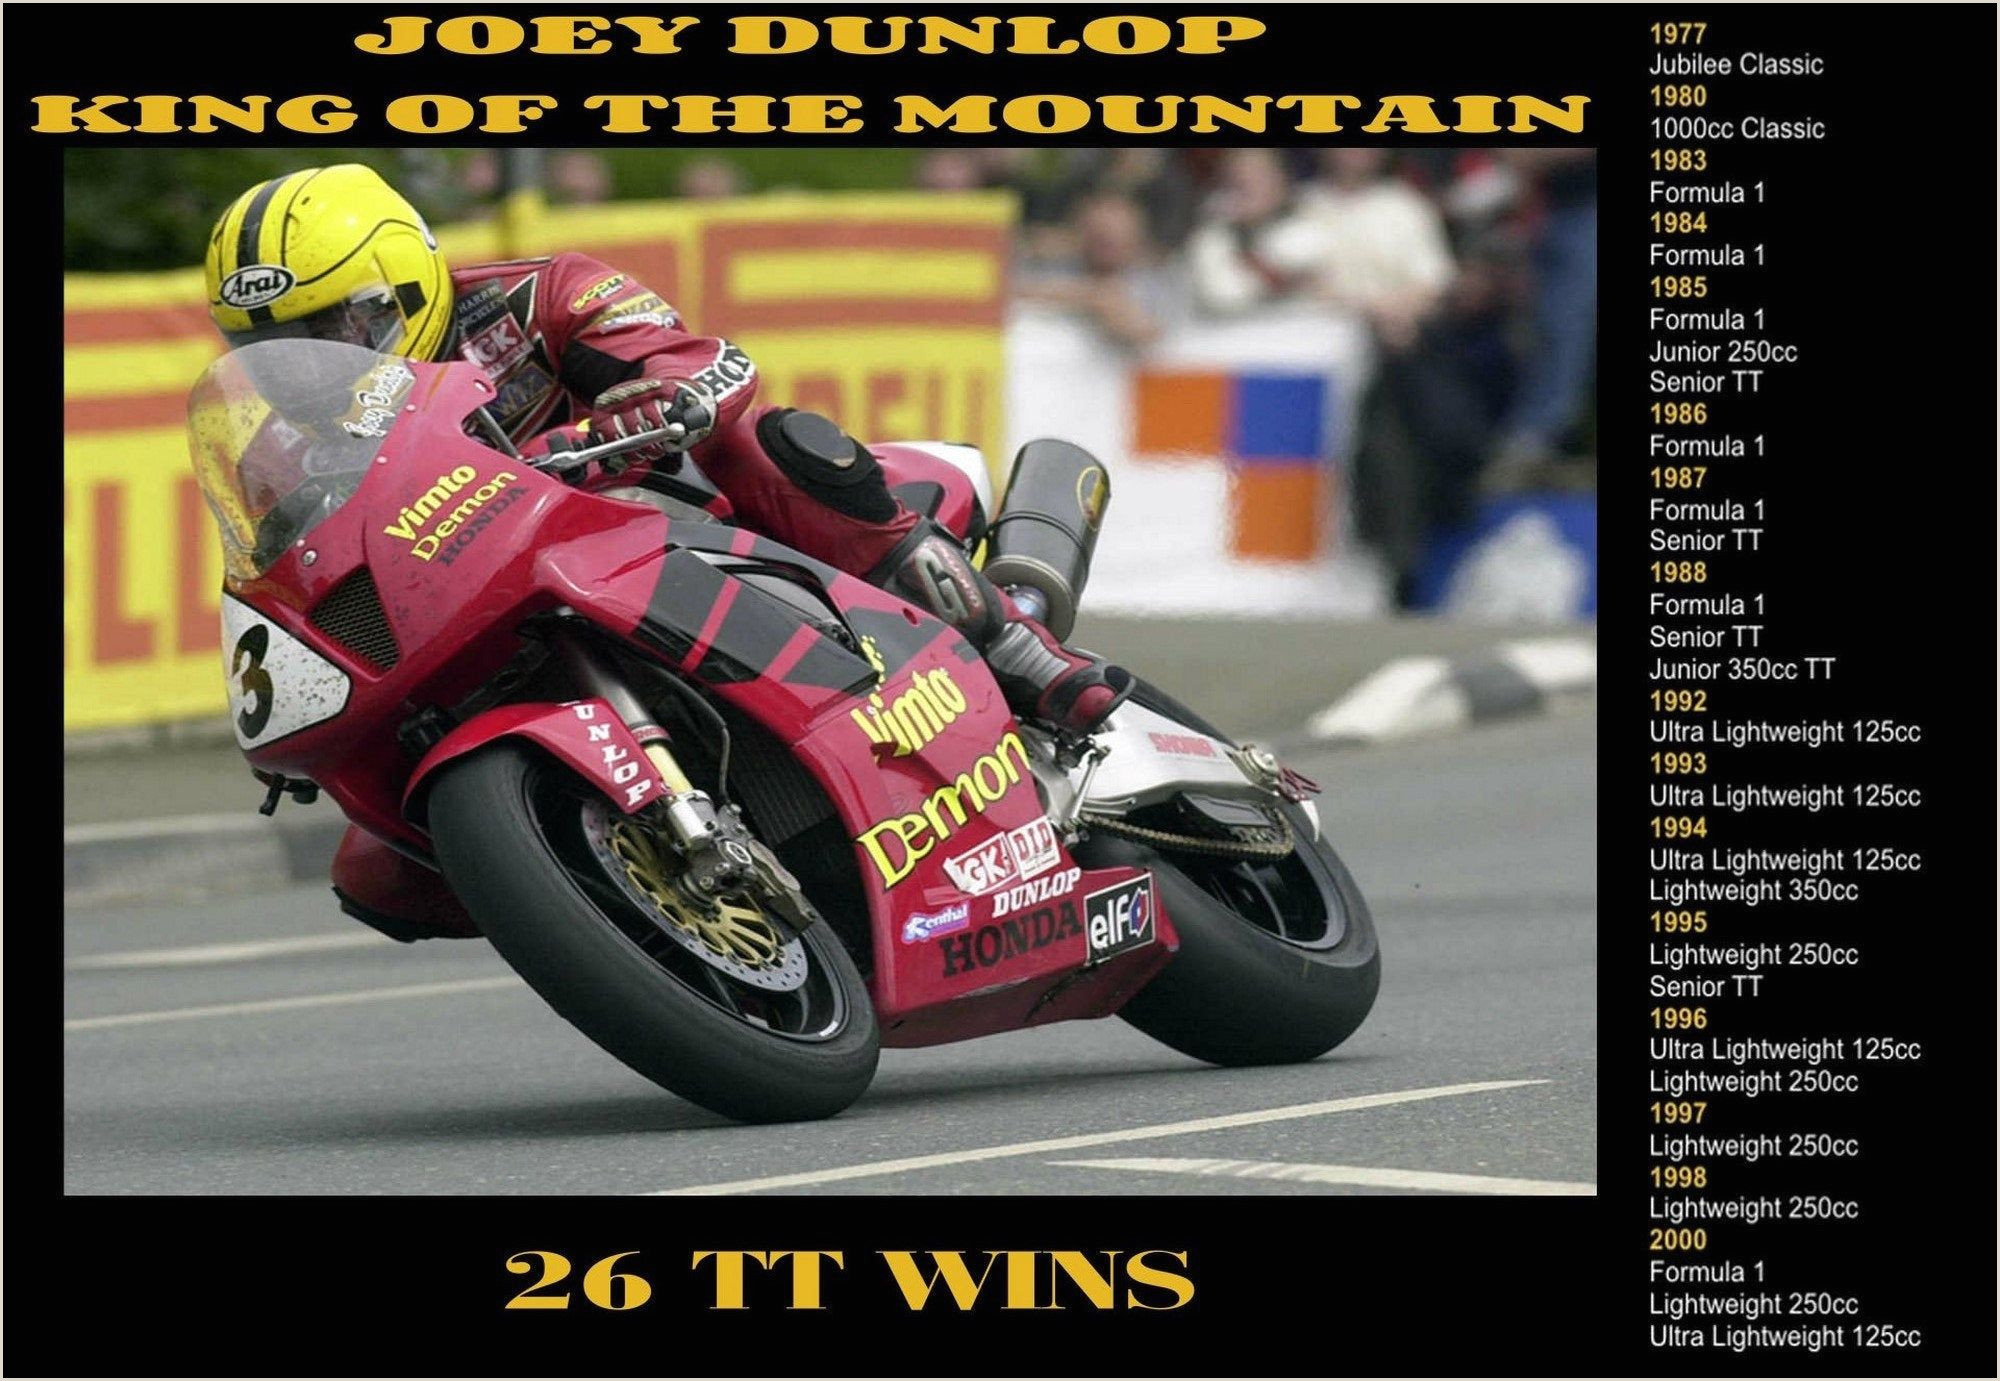 Fold Out Signs Home & Garden Home Décor Plaques & Signs Joey Dunlop Retro